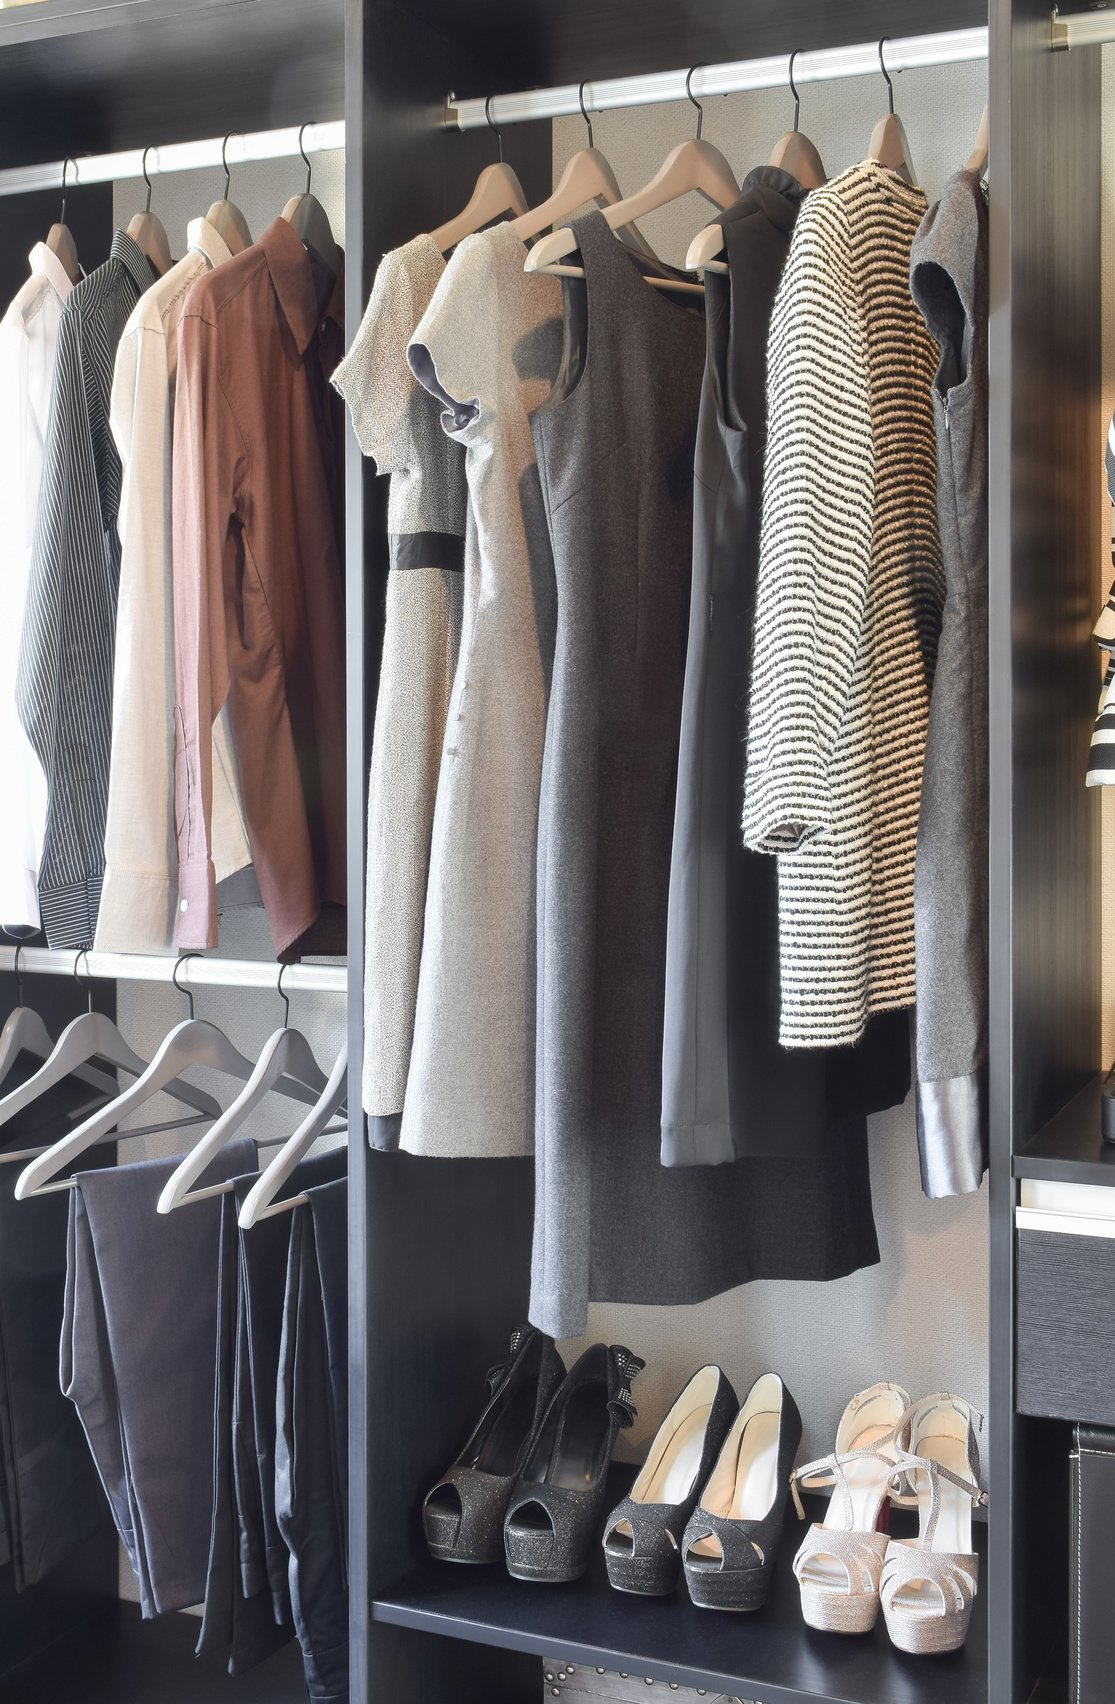 6 Reasons To Consult A Professional Closet Designer